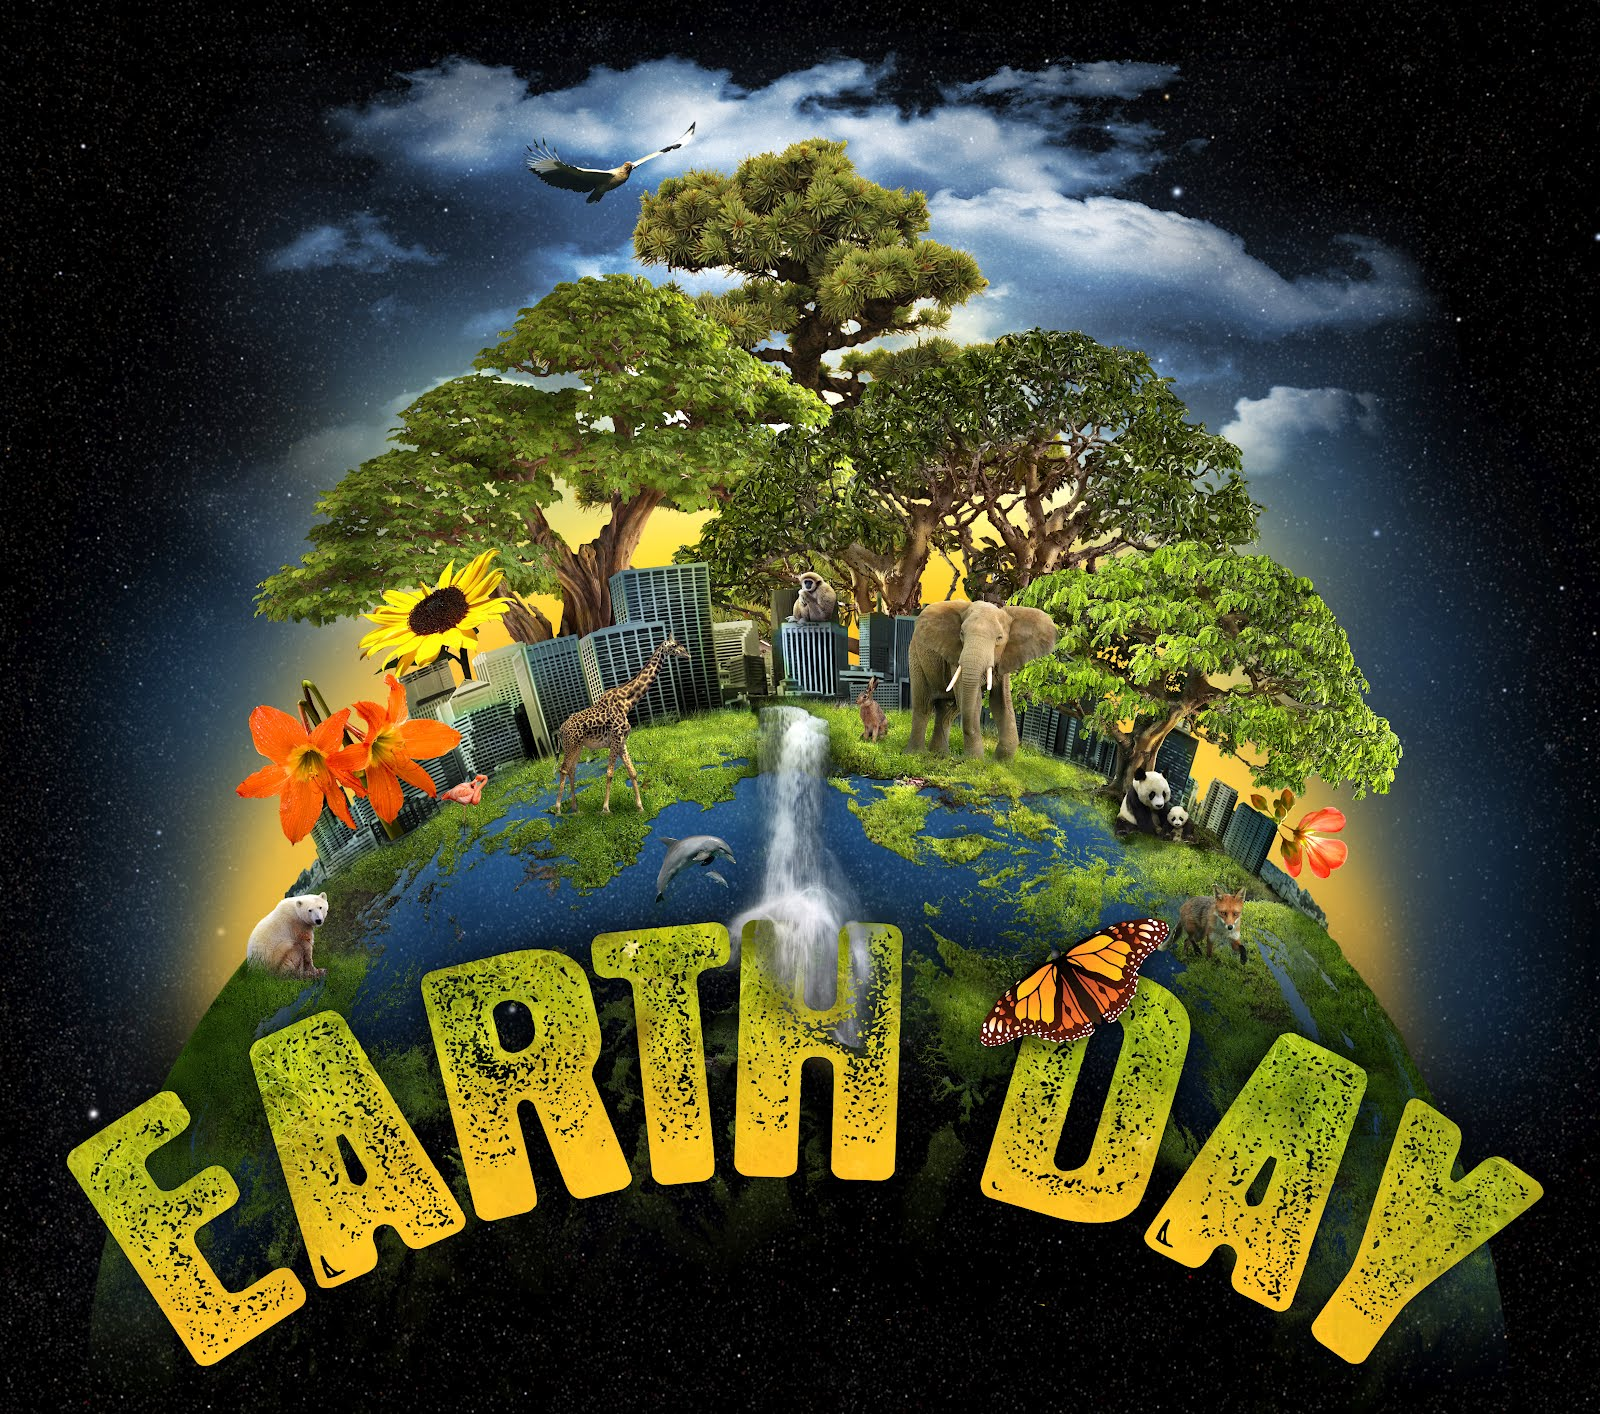 Earth Day 2012 NASA